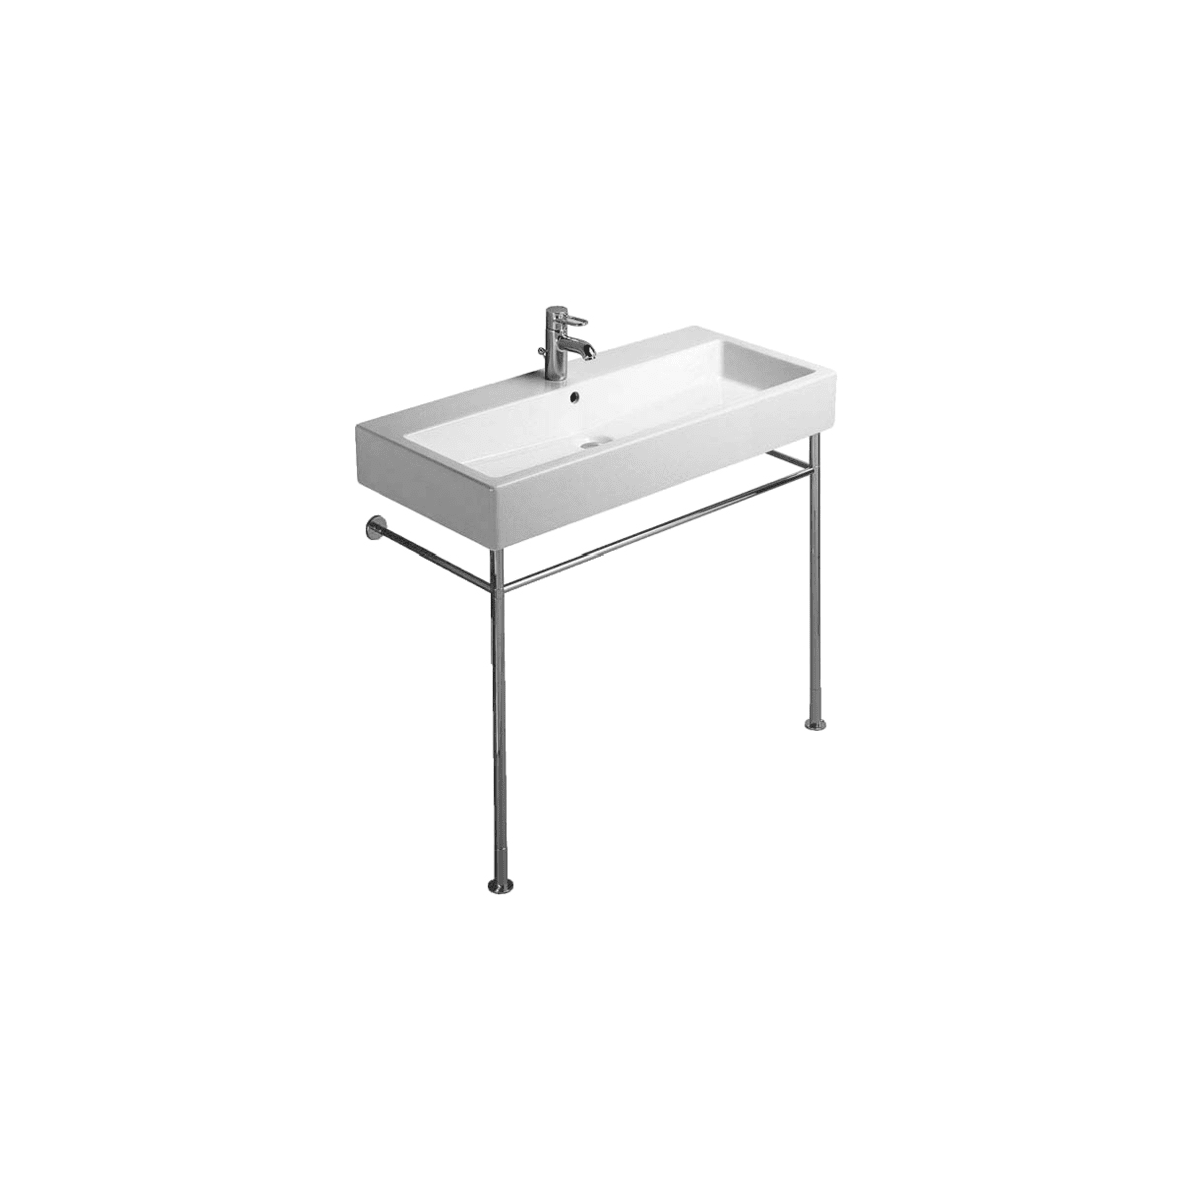 Duravit Adjustable Metal Lavatory Console Only for 045410 from Vero Series